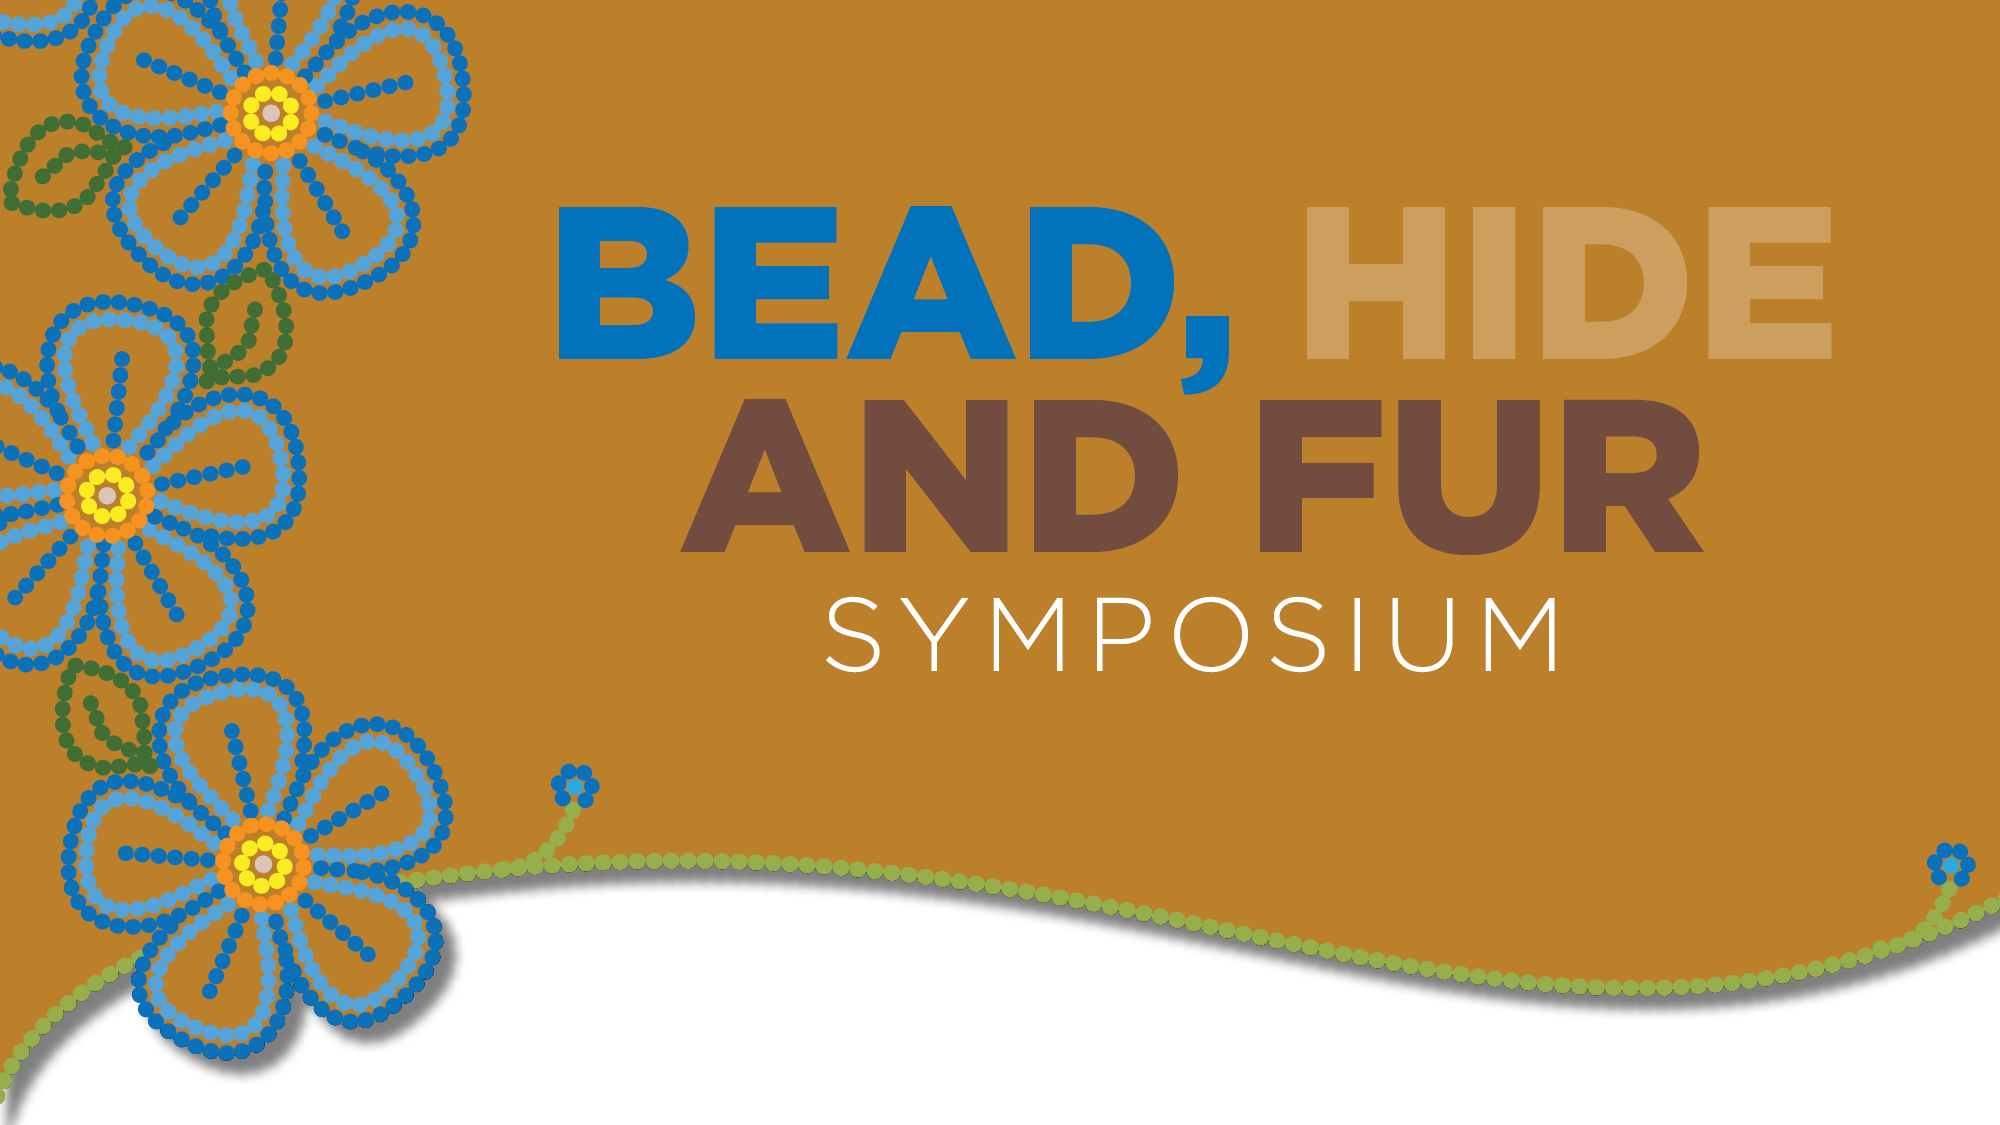 Bead, Hide and Fur Symposium